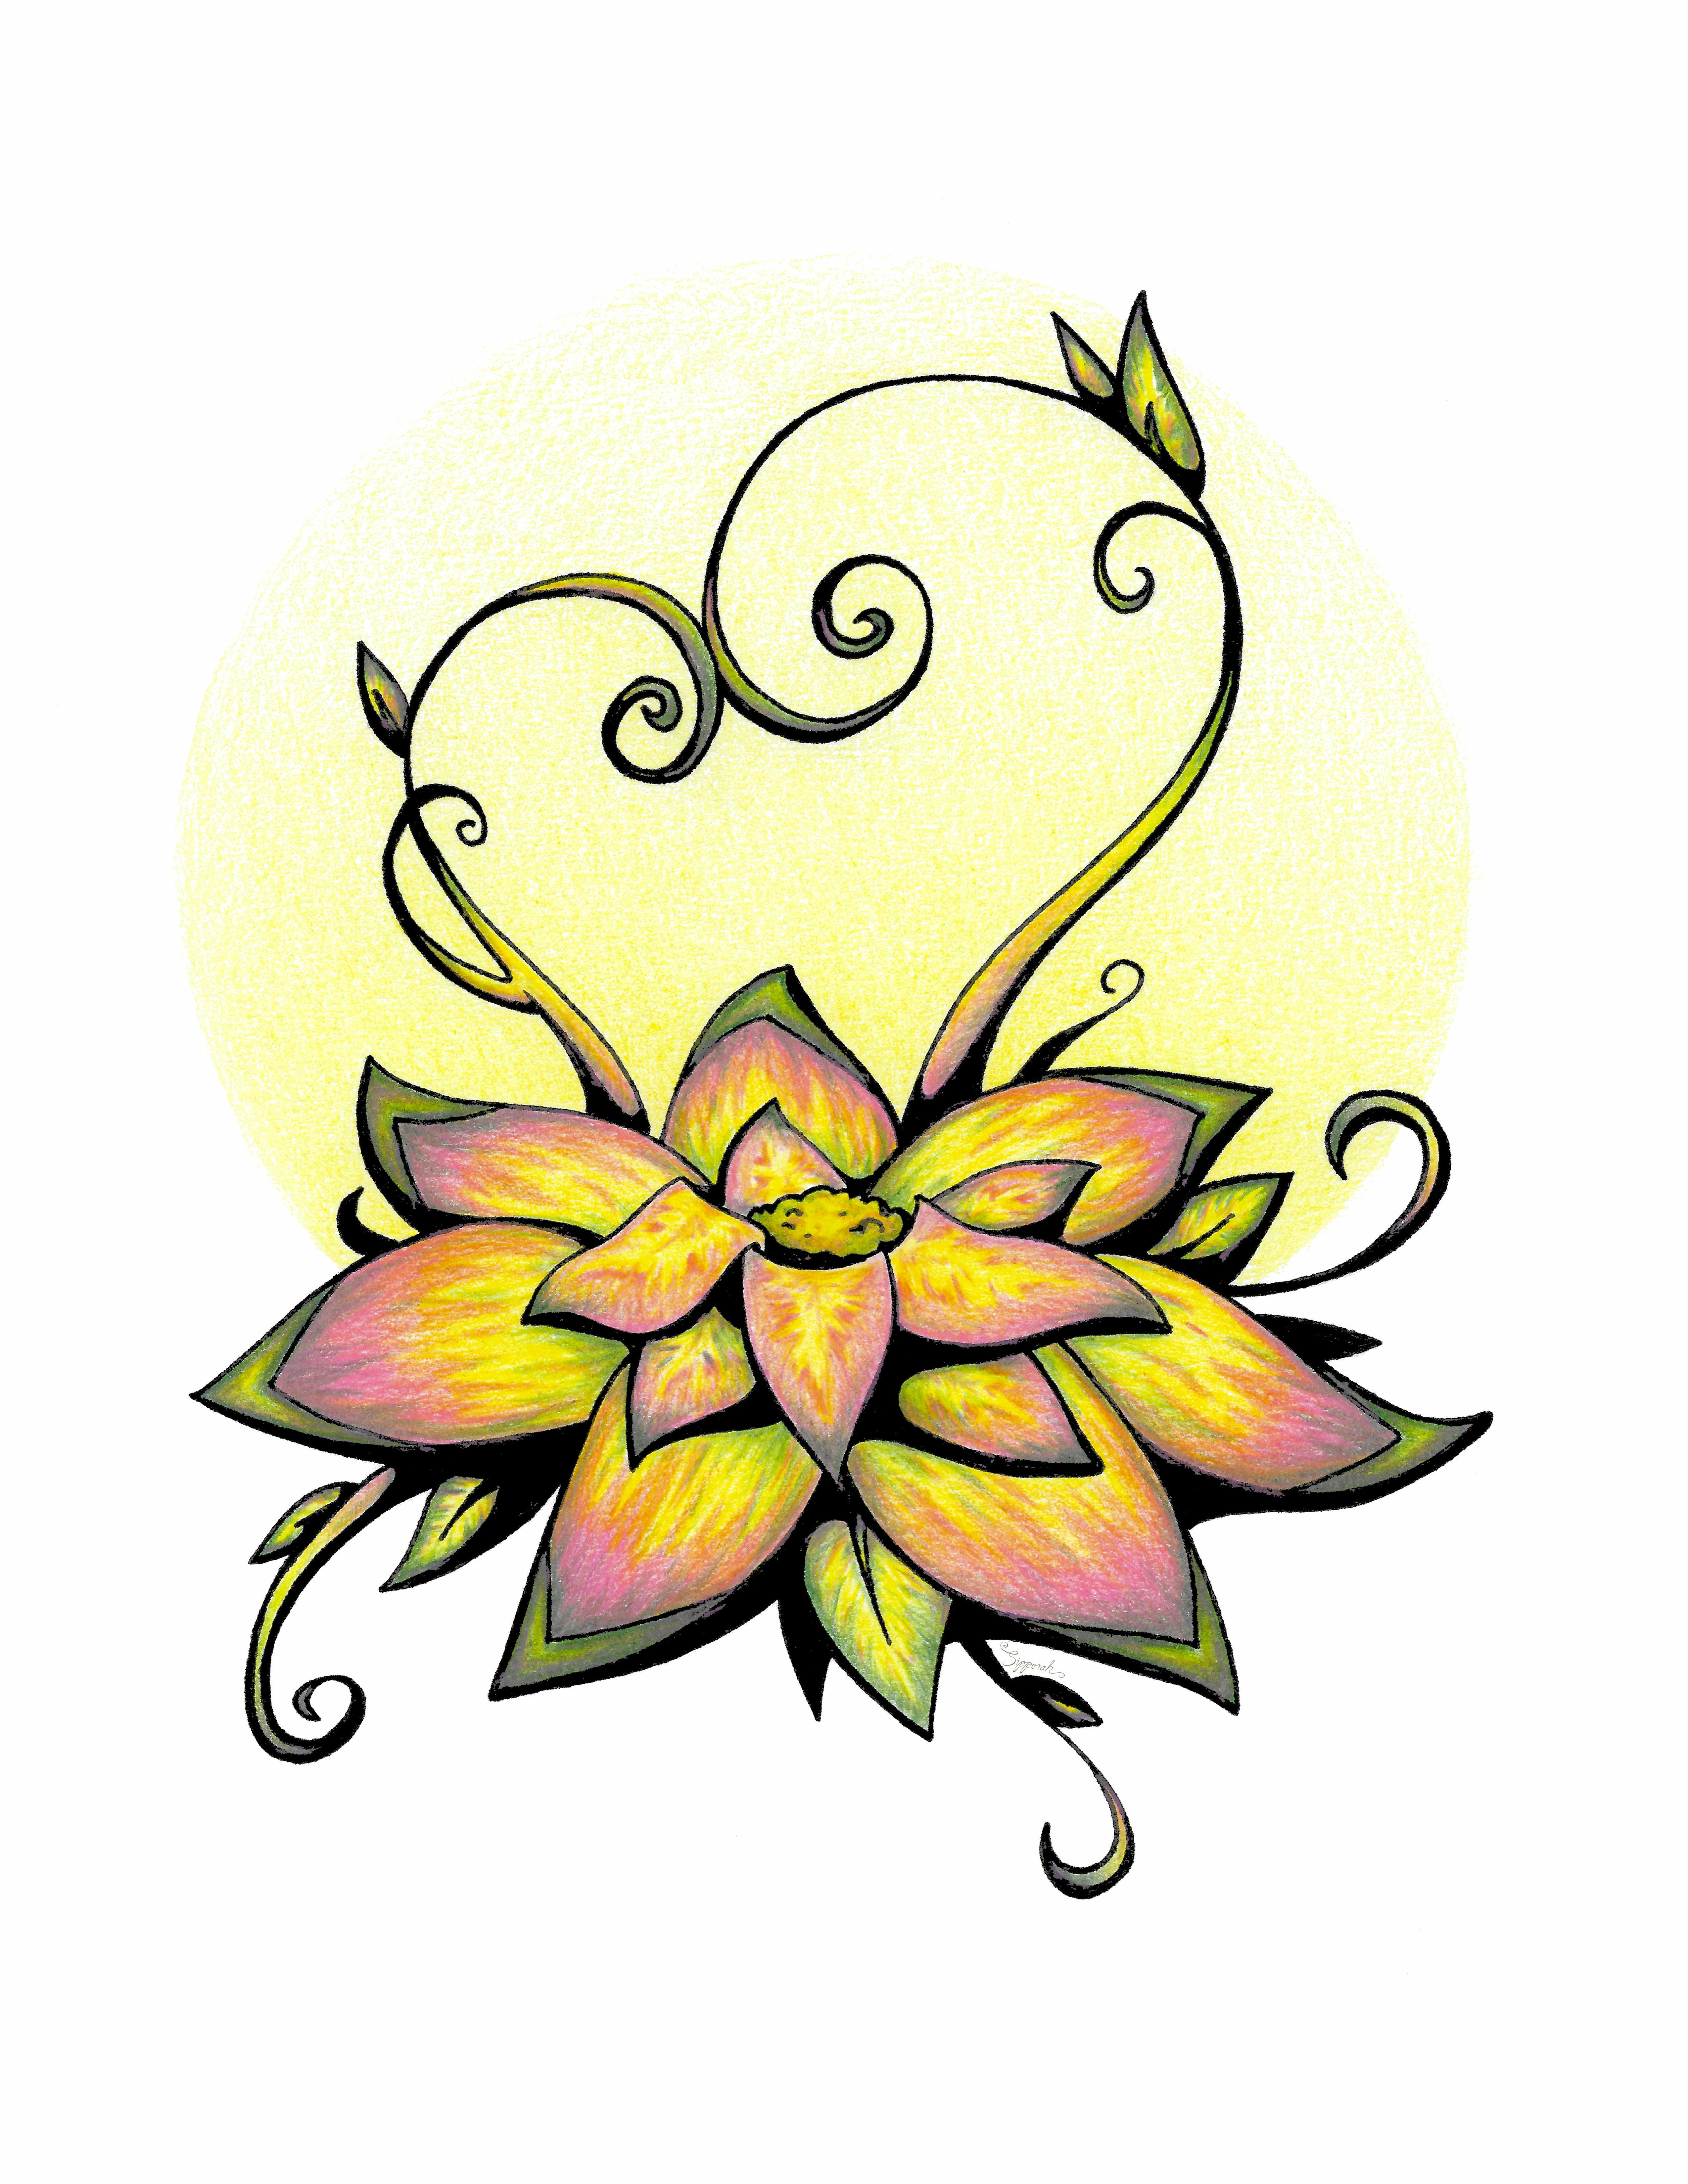 5100x6600 Vibrant Flower Flower Drawings, Pink Flowers, Floral Wall Art